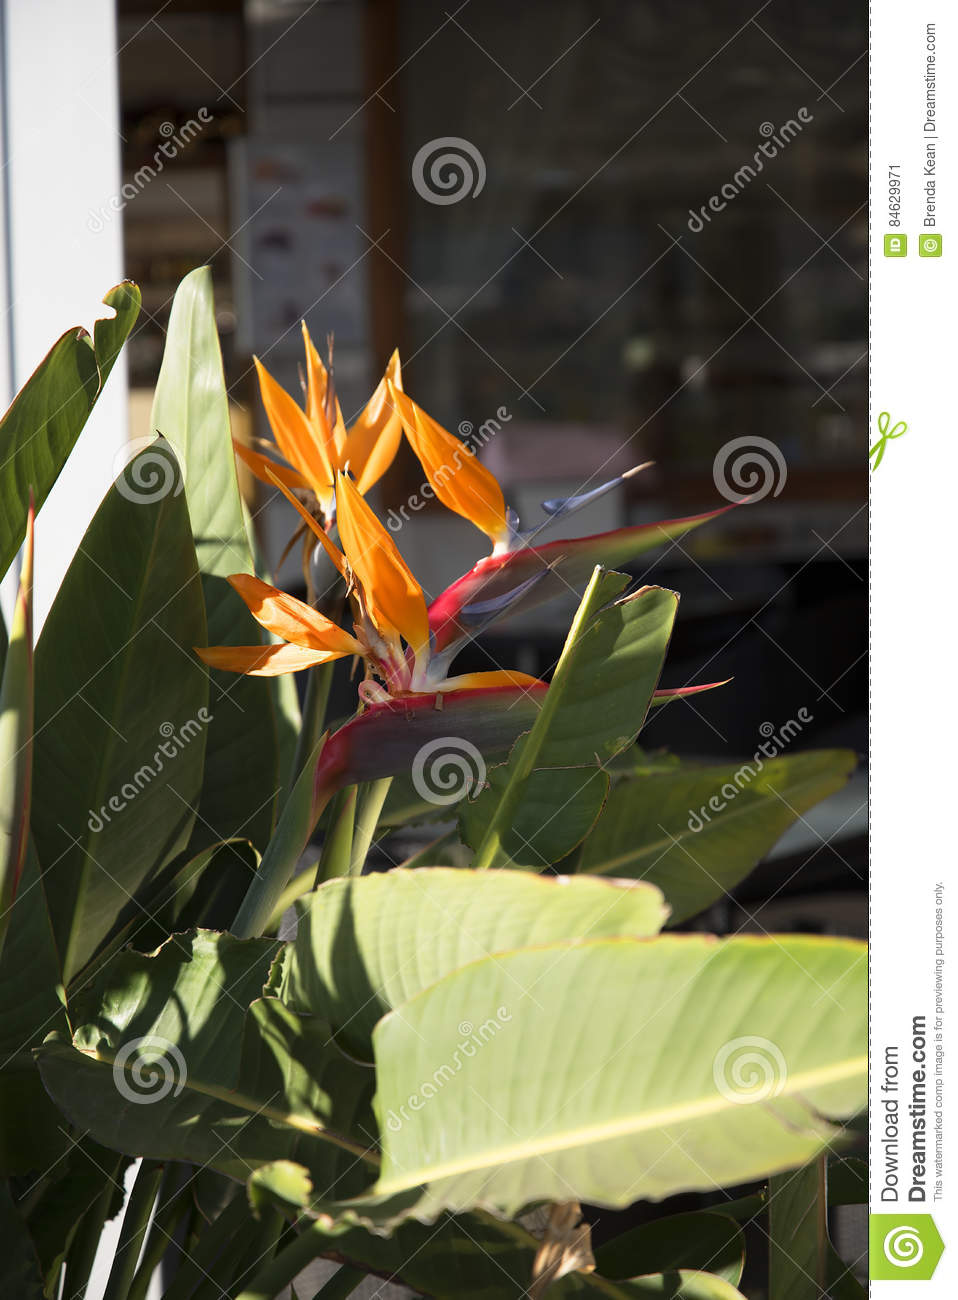 Bird of paradise flowers in nerja a sleepy spanish holiday resort download bird of paradise flowers in nerja a sleepy spanish holiday resort on the costa izmirmasajfo